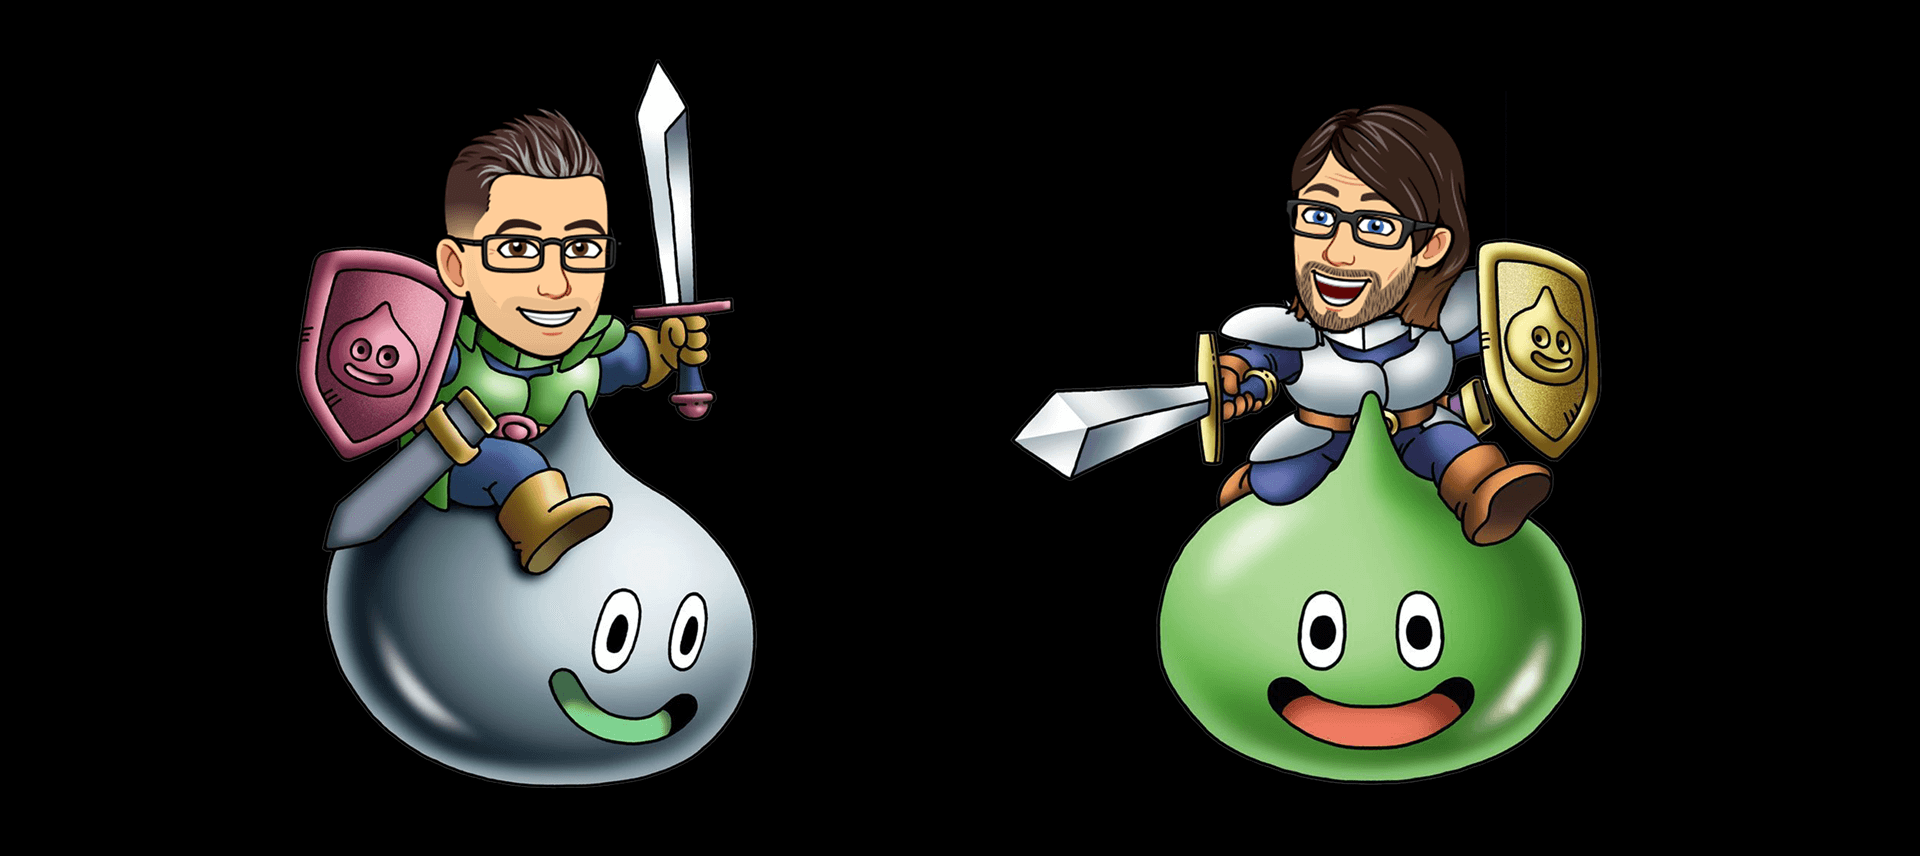 DQFM Episode 28: Dragon Quest XII Wishlists!